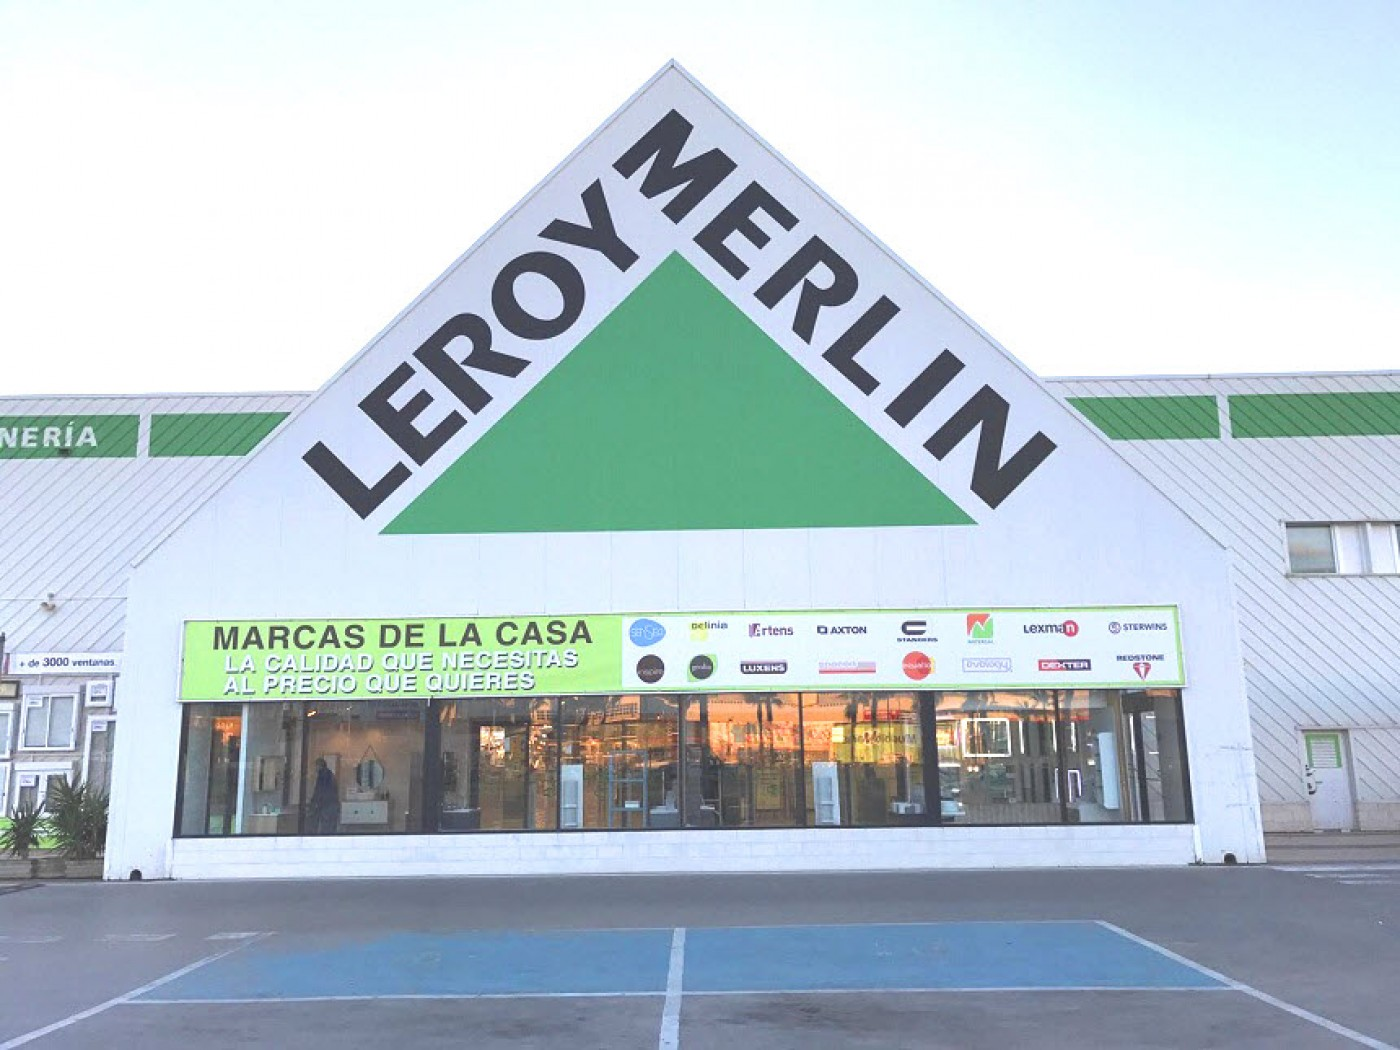 Leroy Merlin Cartagena Home, Garden and DIY superstore